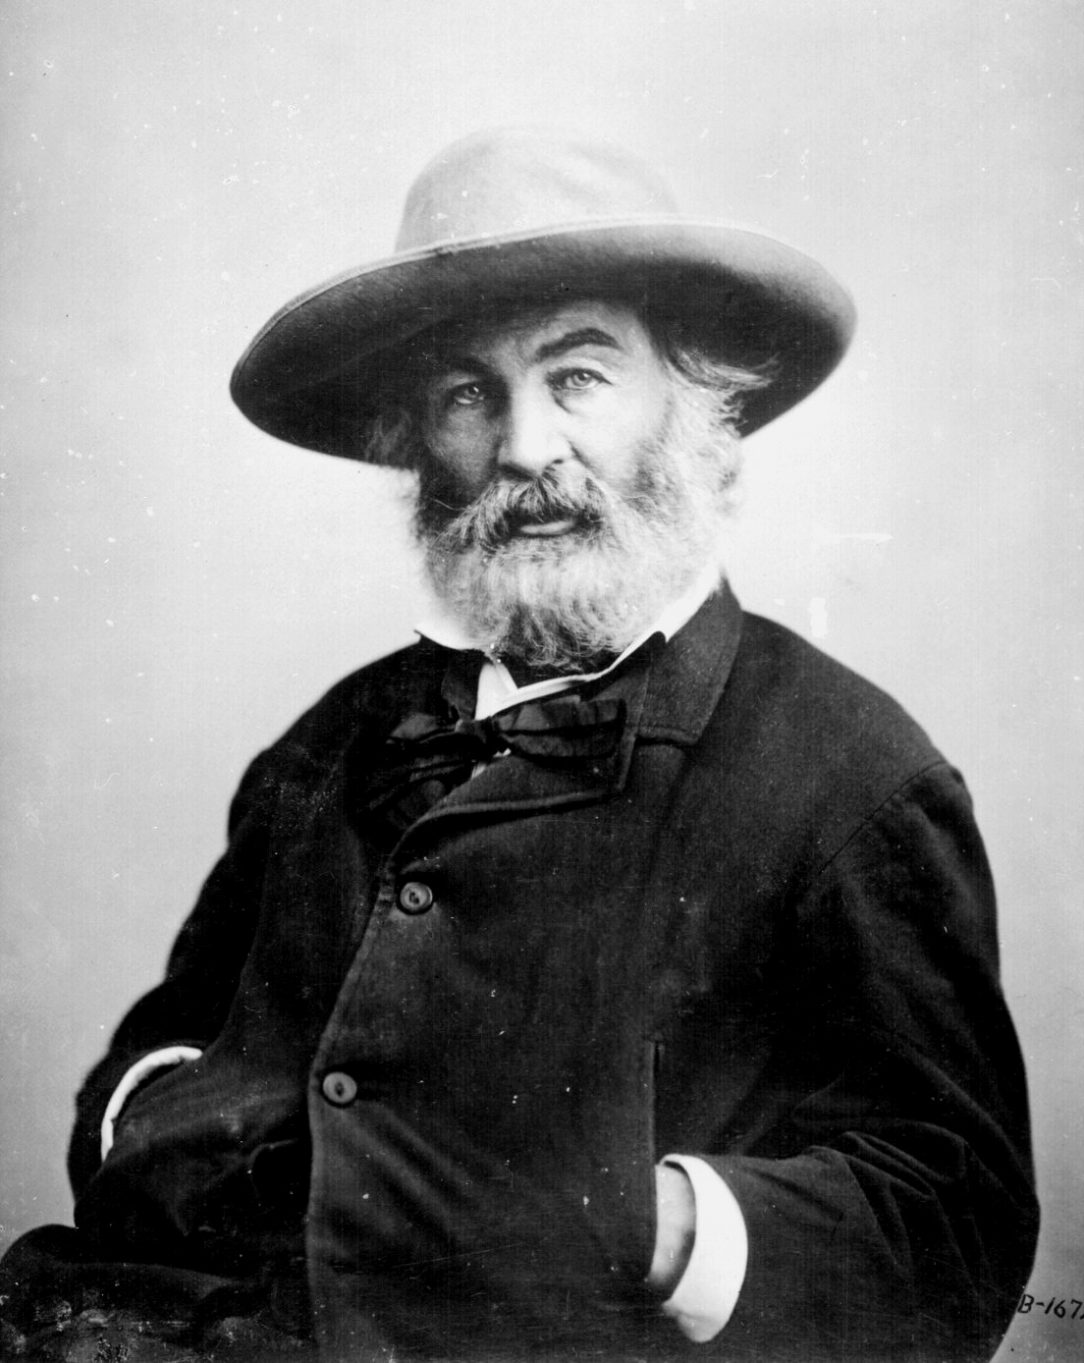 Walt Whitman by Mathew Brady